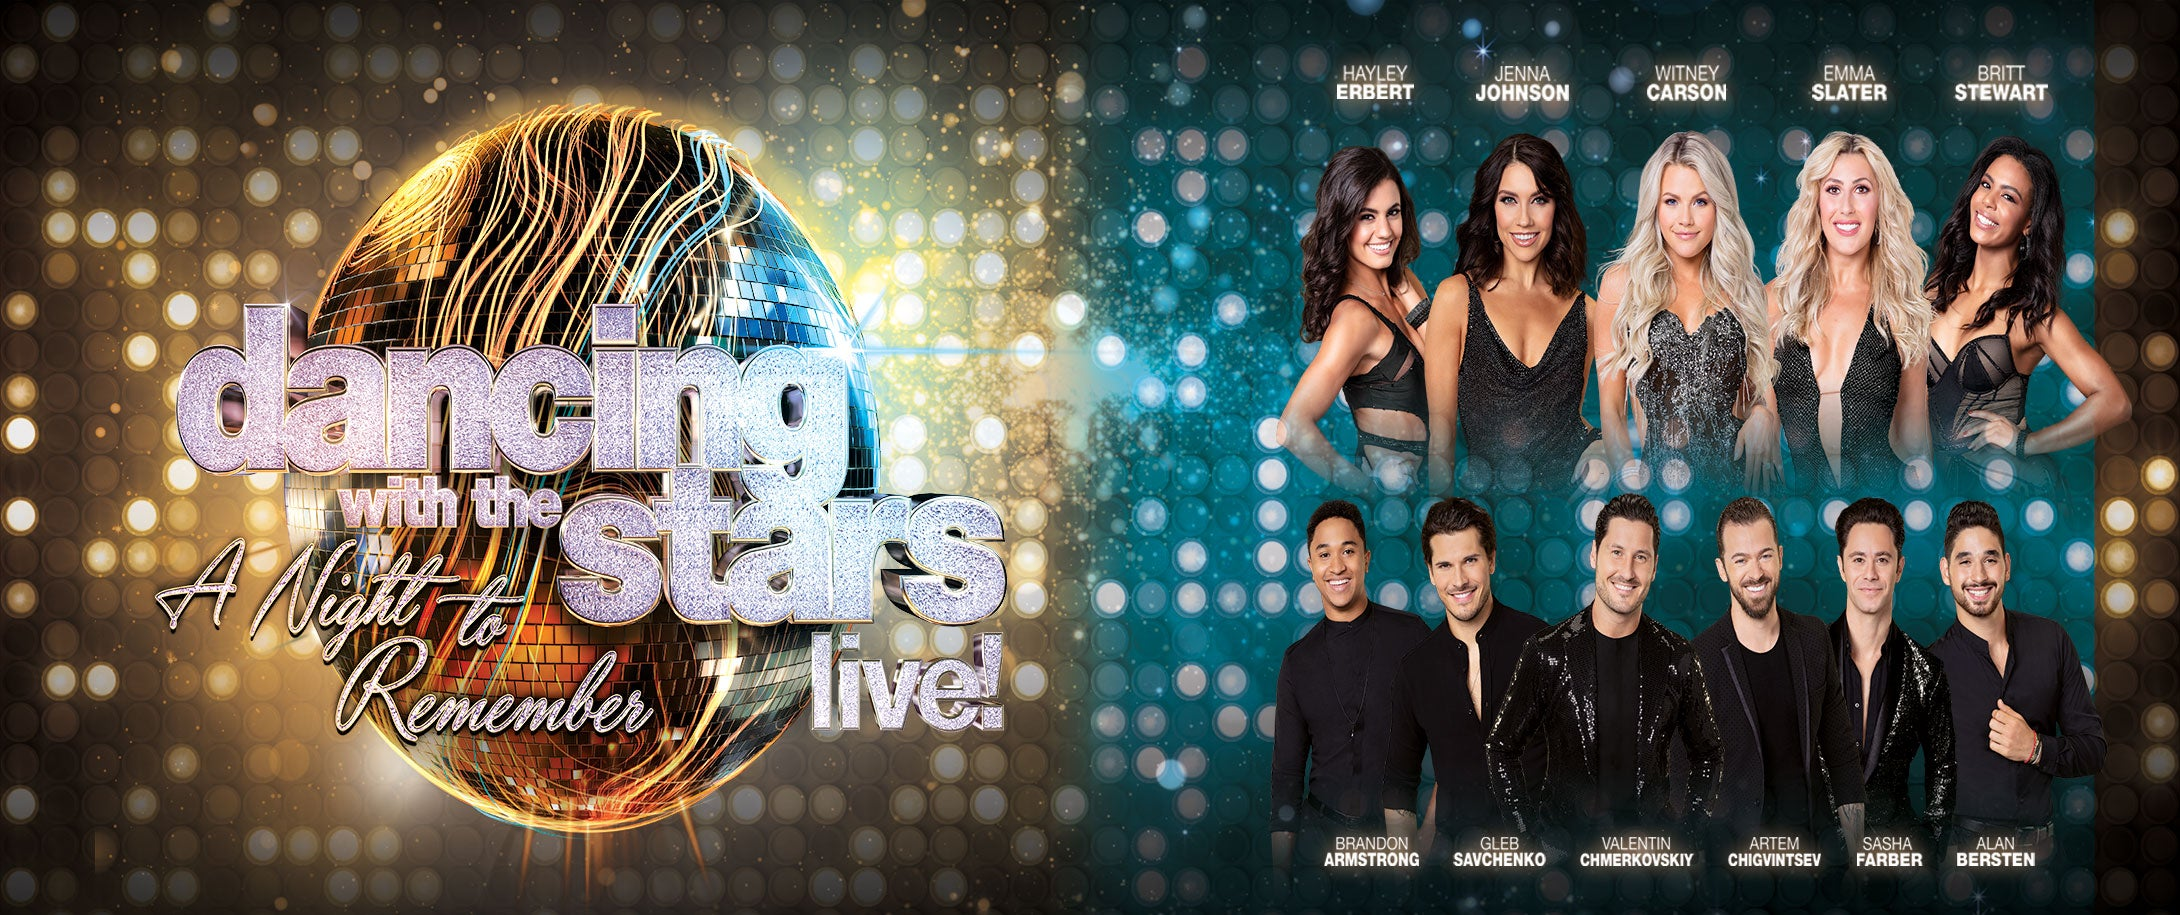 Dancing with the Stars Live! A Night to Remember